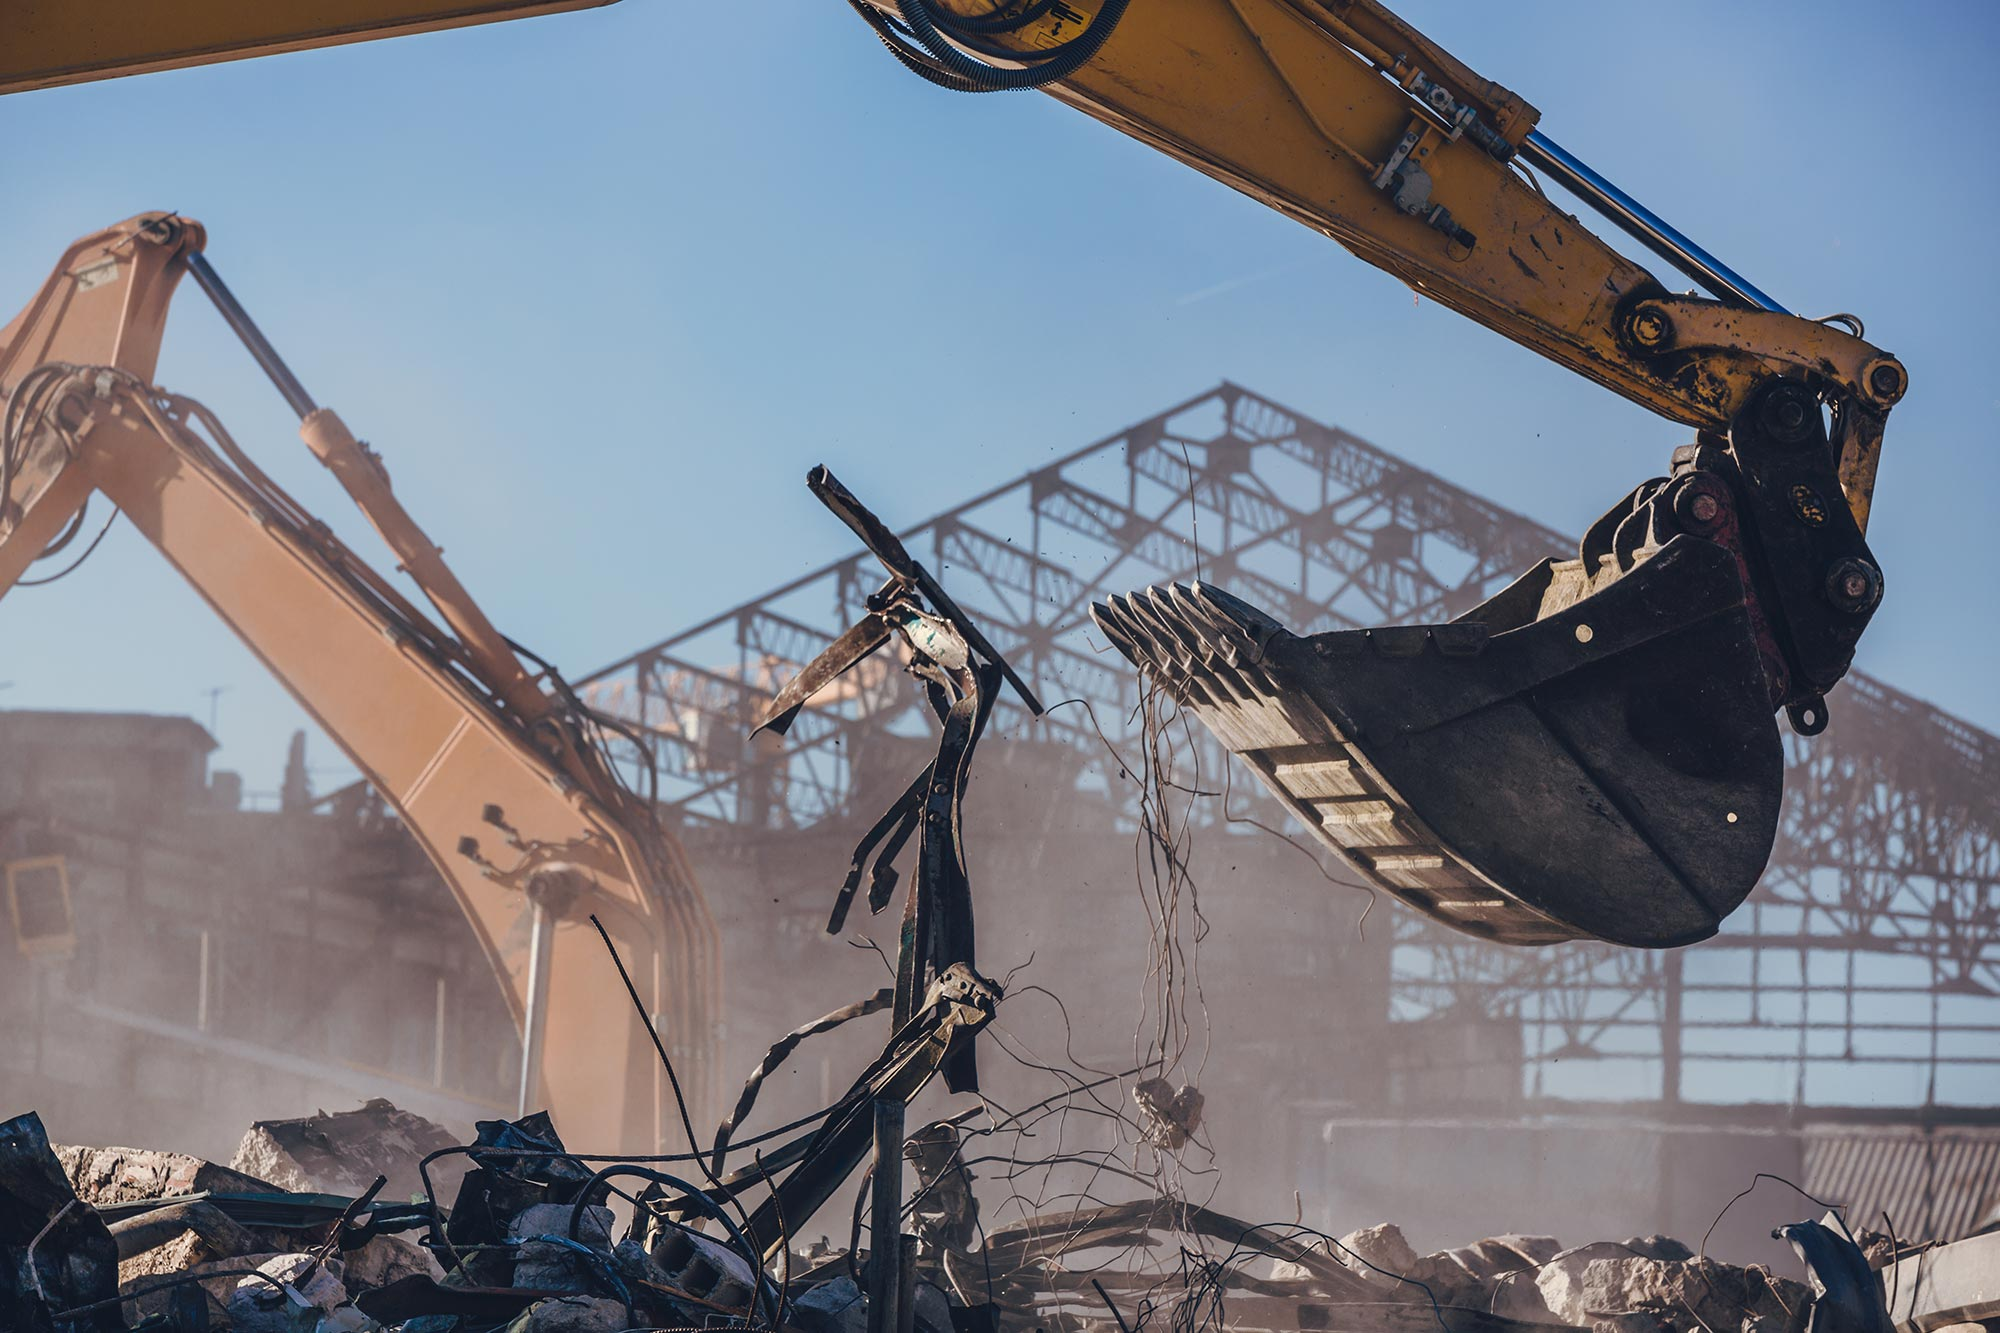 An excavator arm amidst debris with the structure of an industrial building in the background